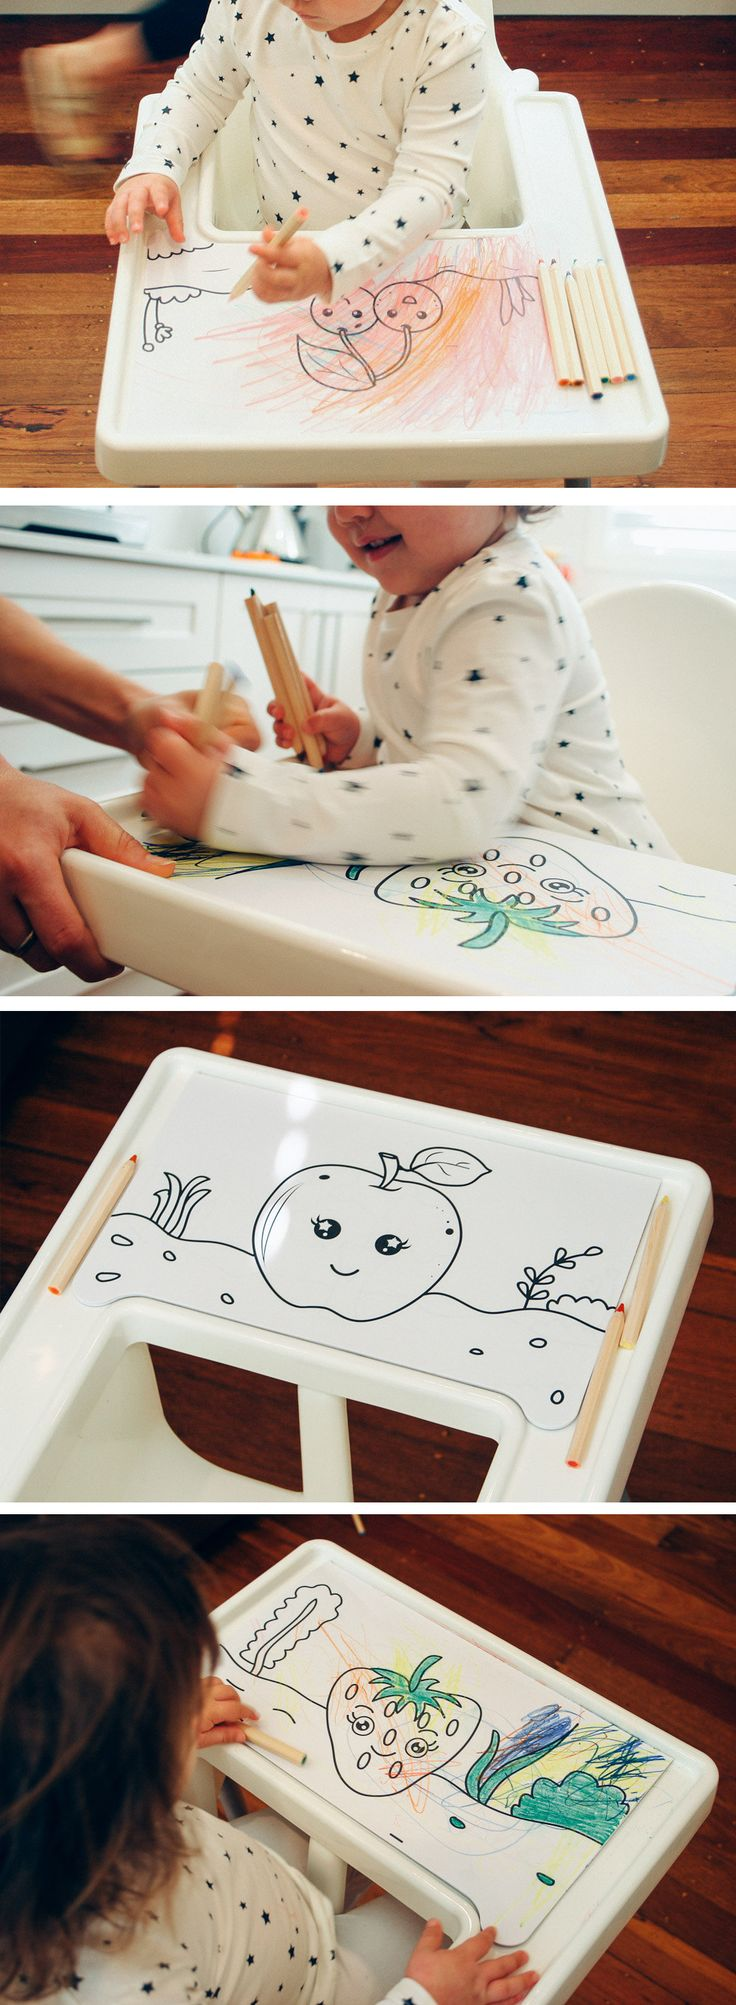 Hushpad is a coloring Pad for Ikea Antilop Highchair, Colouring Pad for Ikea Antilop Highchair, Ikea Hack - Genius design! Awesome product! Perfect Christmas present for a toddler mom or parent. Australian design via Etsy.